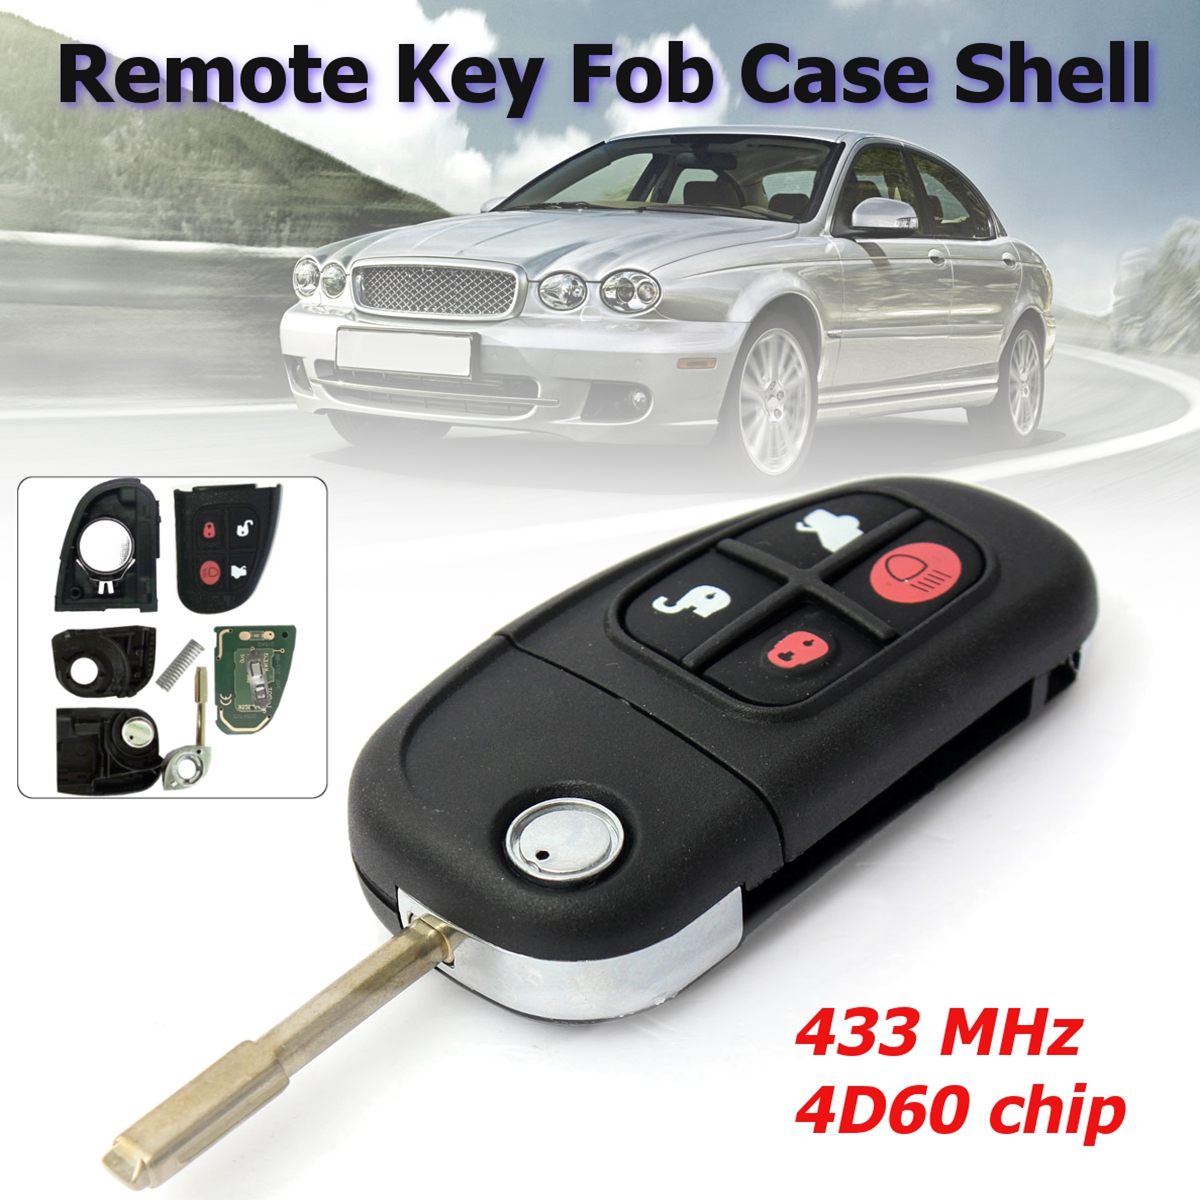 Brand new 4 Bottons Car Auto Flip Remote Key for Jaguar X-Type S-Type 1999-2009 XJ XJR 2002-2008 433MHz with 4D60 chip(China)